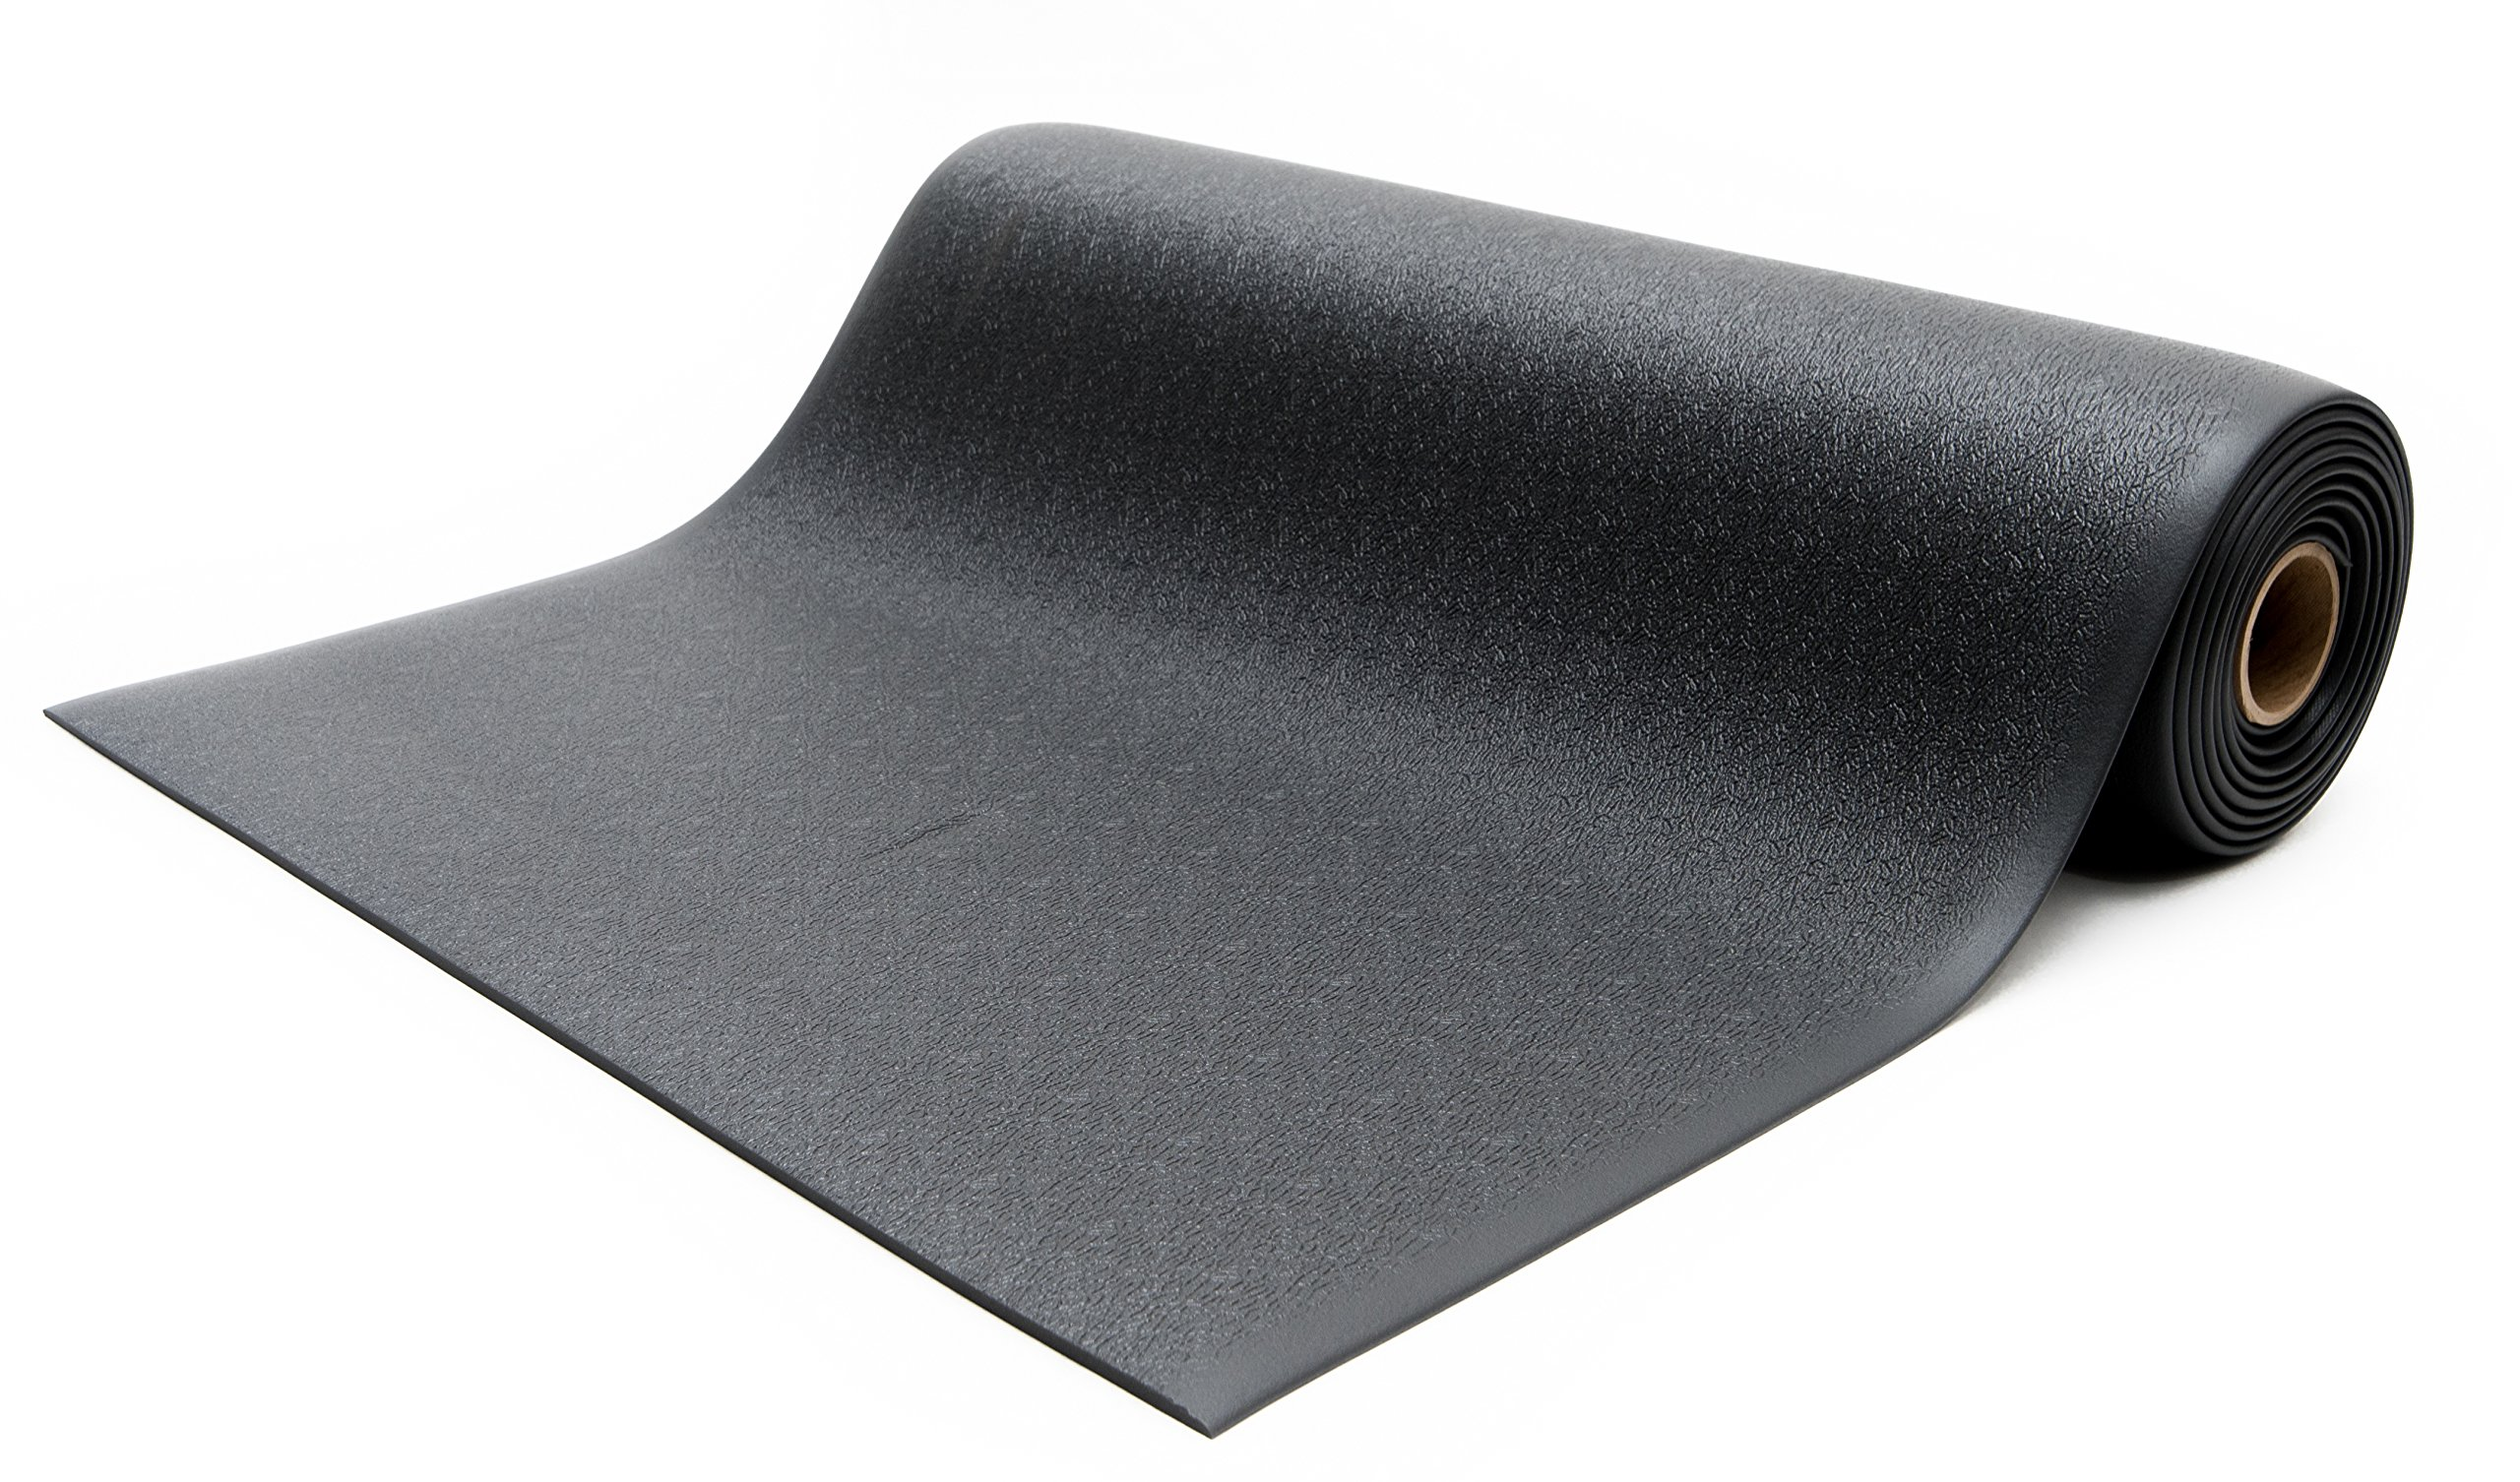 Made in USA Bertech Anti Fatigue Vinyl Foam Floor Mat Black Textured Pattern Bevelled on All Four Sides 3 Wide x 5 Long x 3//8 Thick